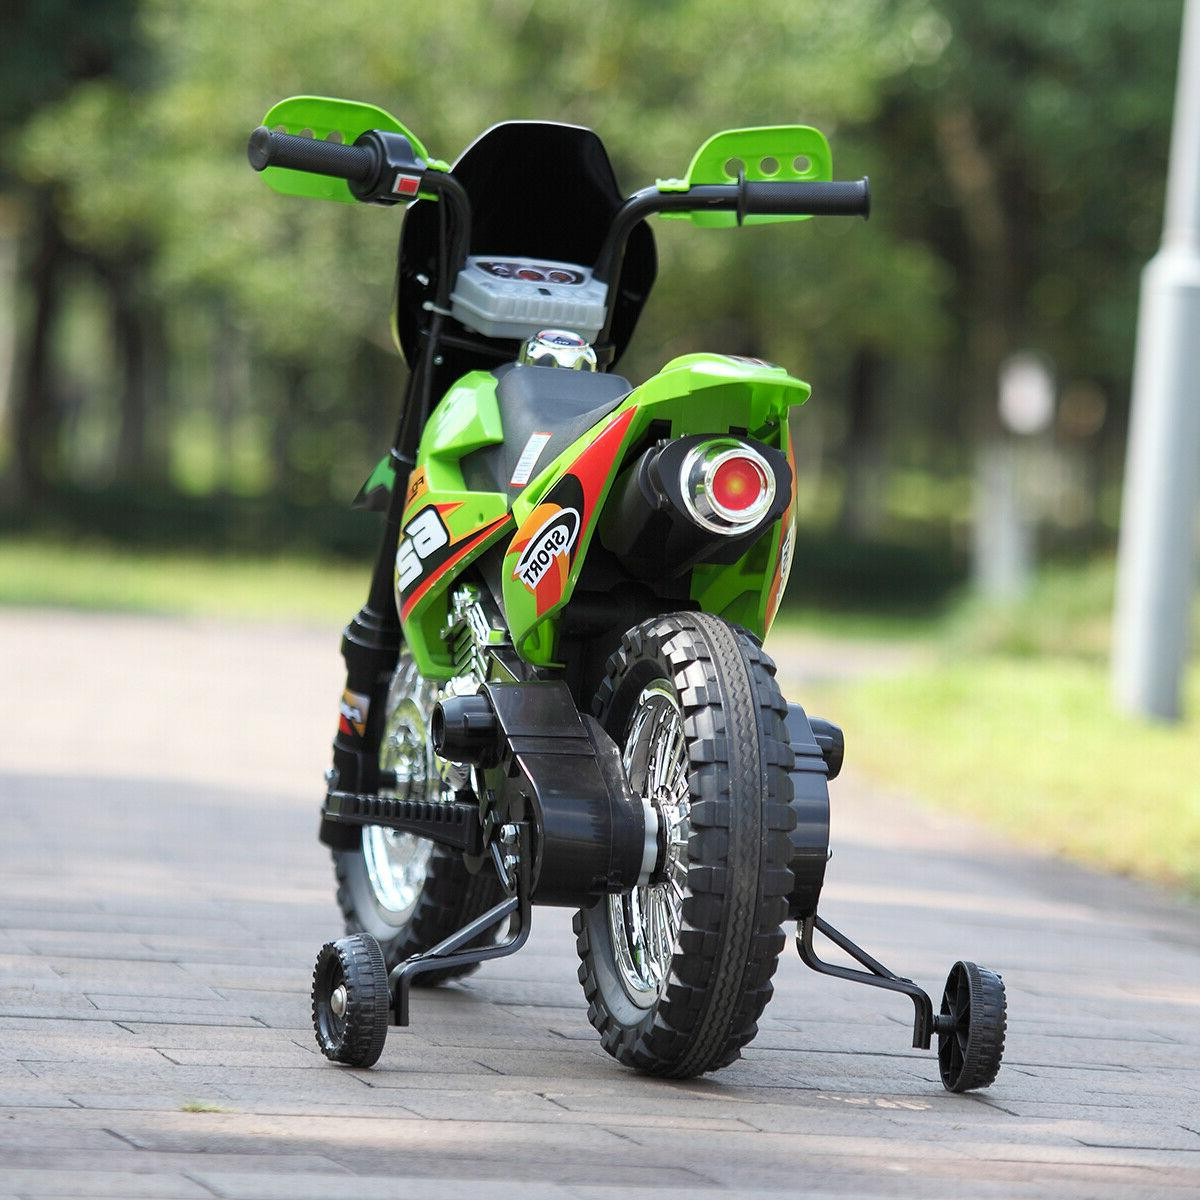 6V Motorcycle Toy Electric Powered wheels Color